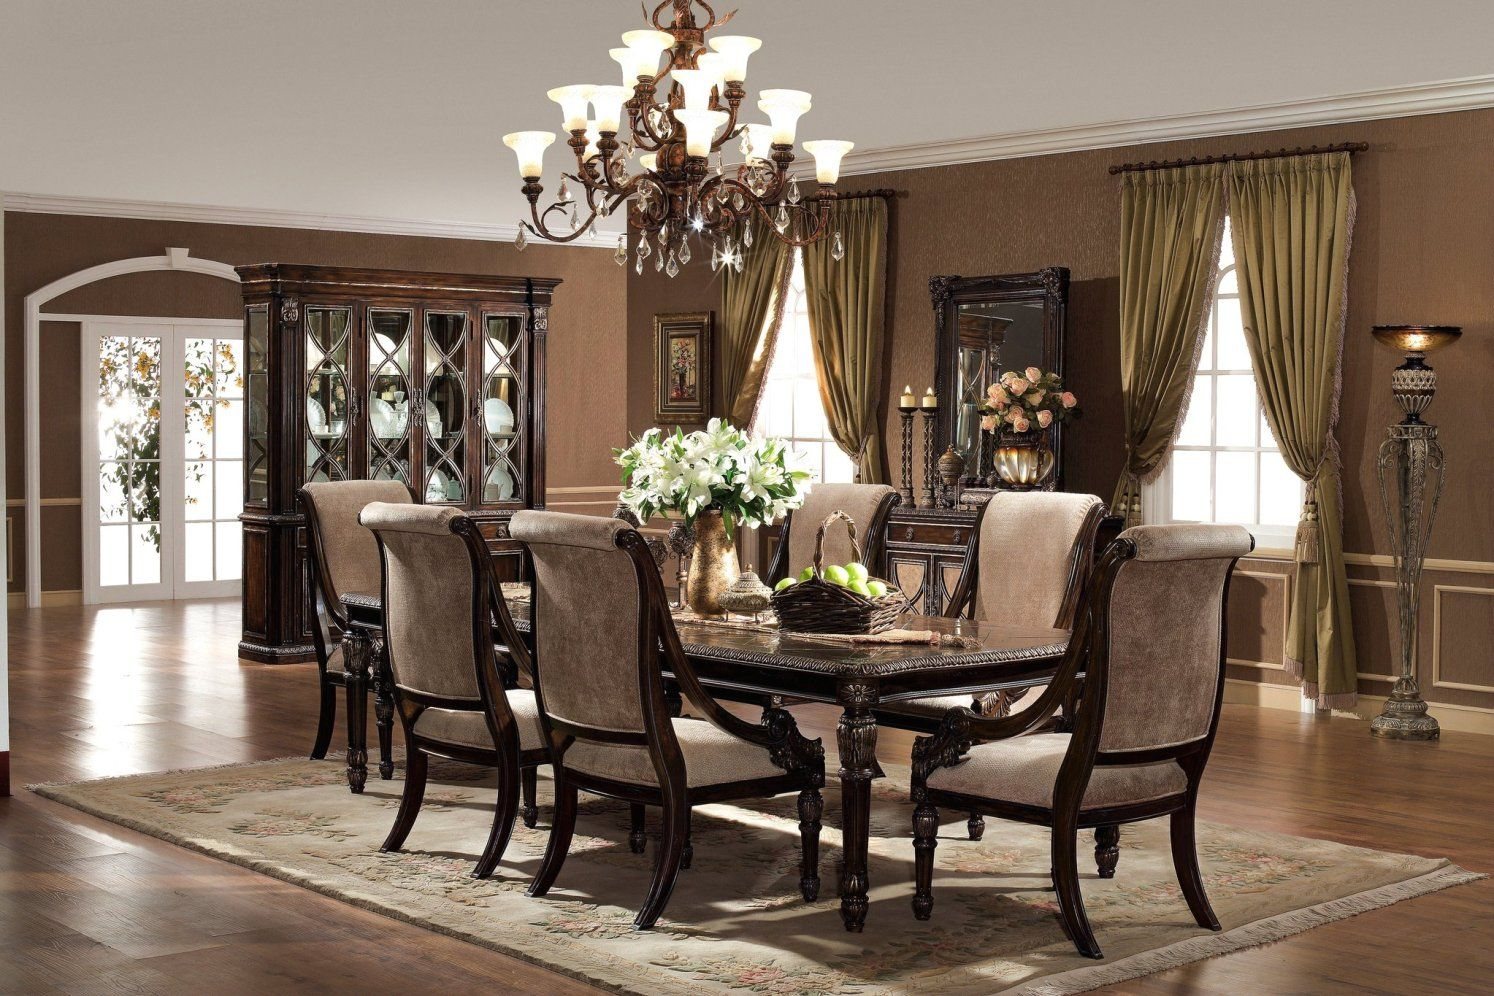 formal dining room sets reasons why formal tables offer more than rh pinterest com Dining Room Furniture Sets Dining Room Furniture Sets